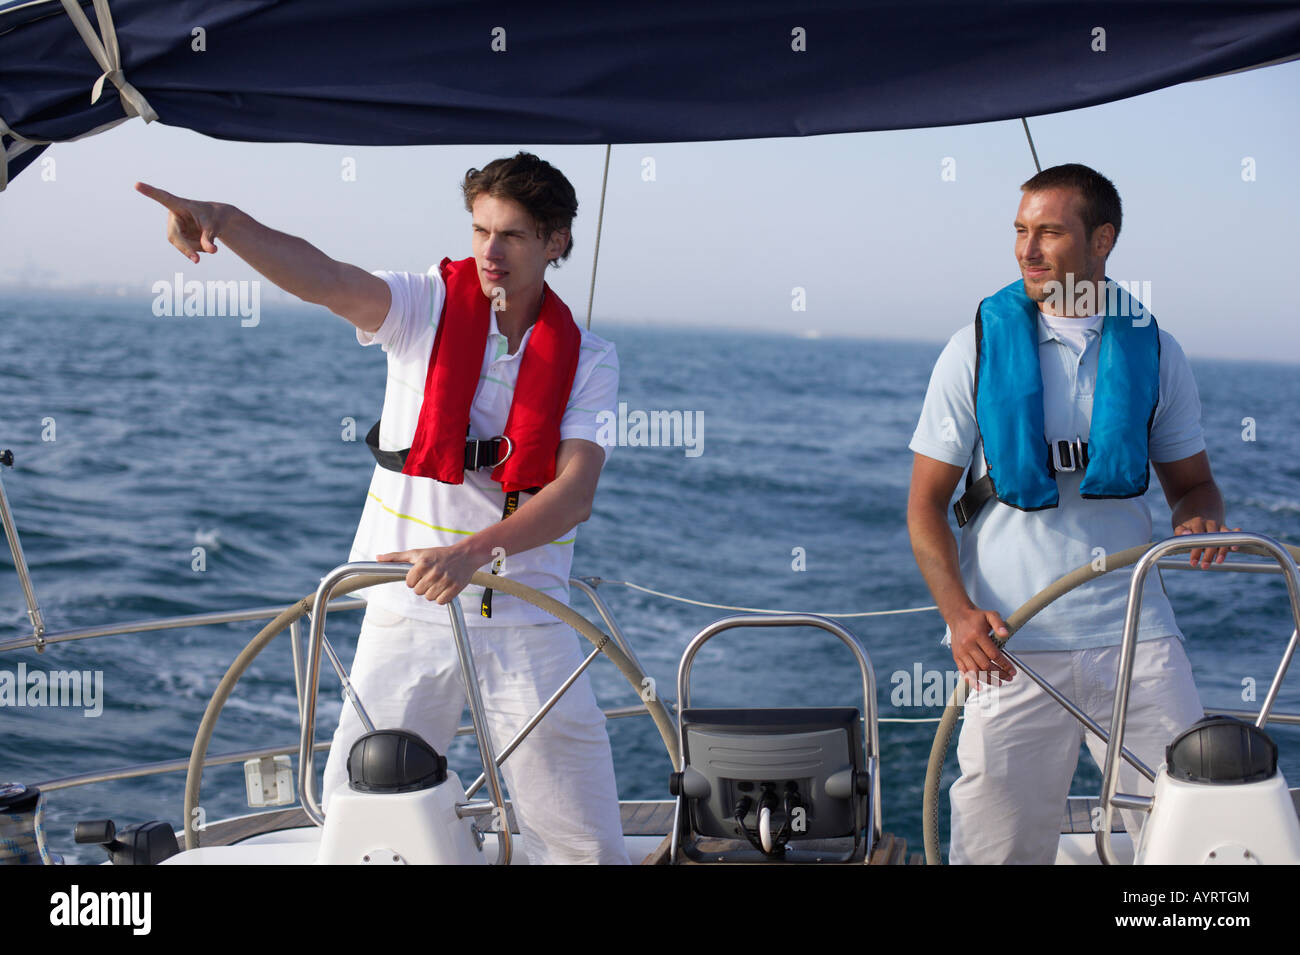 Two men steering a boat Stock Photo